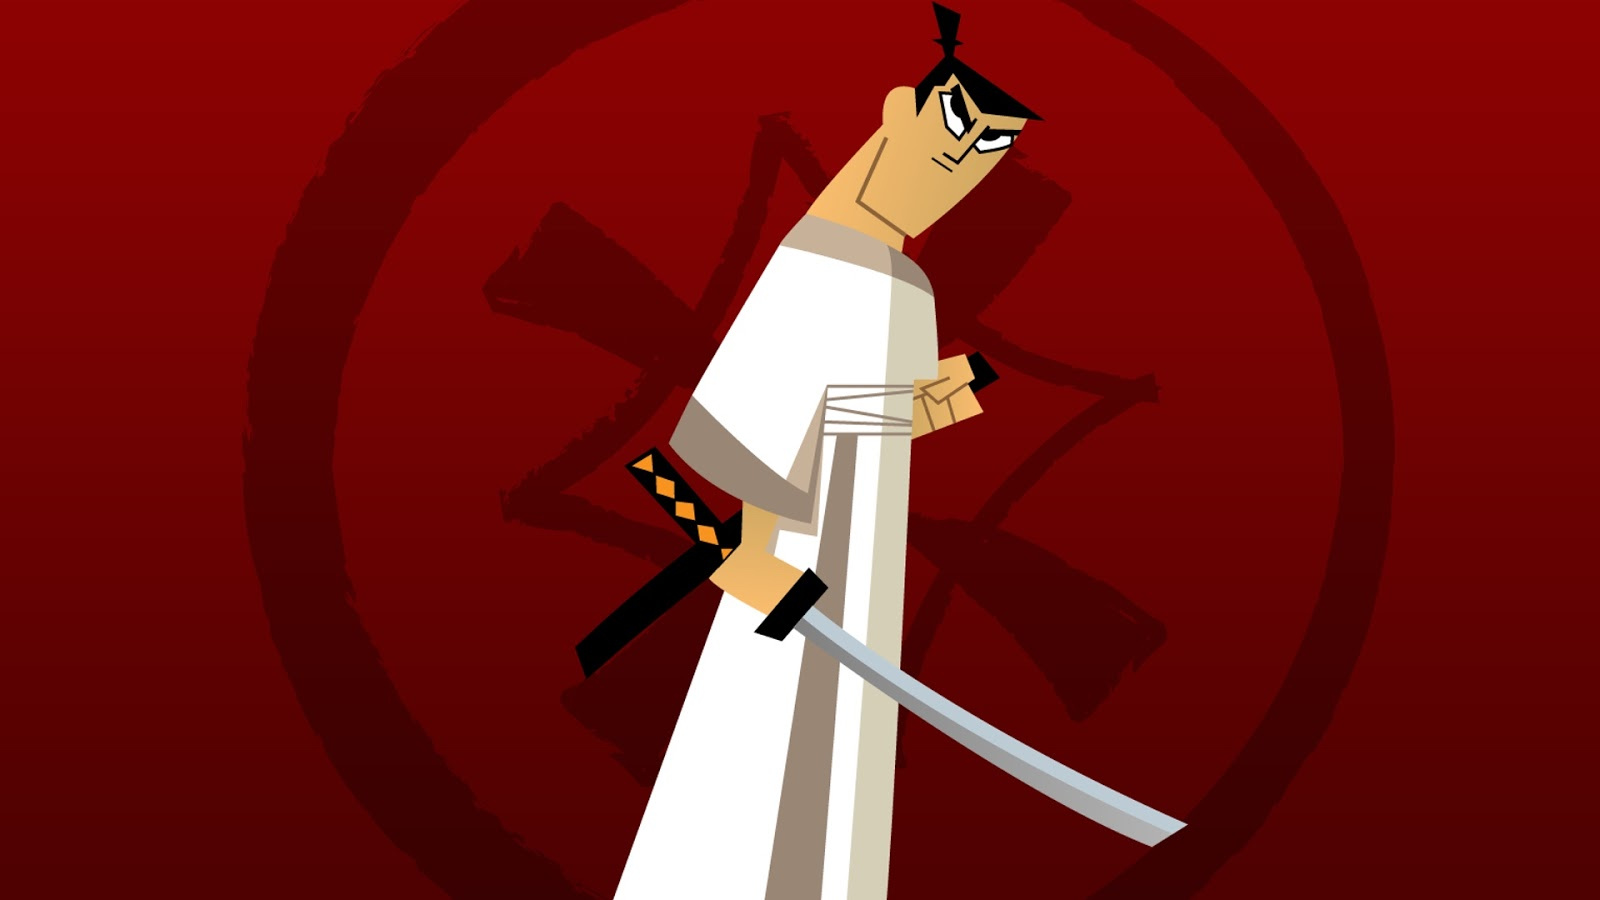 samurai jack all episodes in hindi download